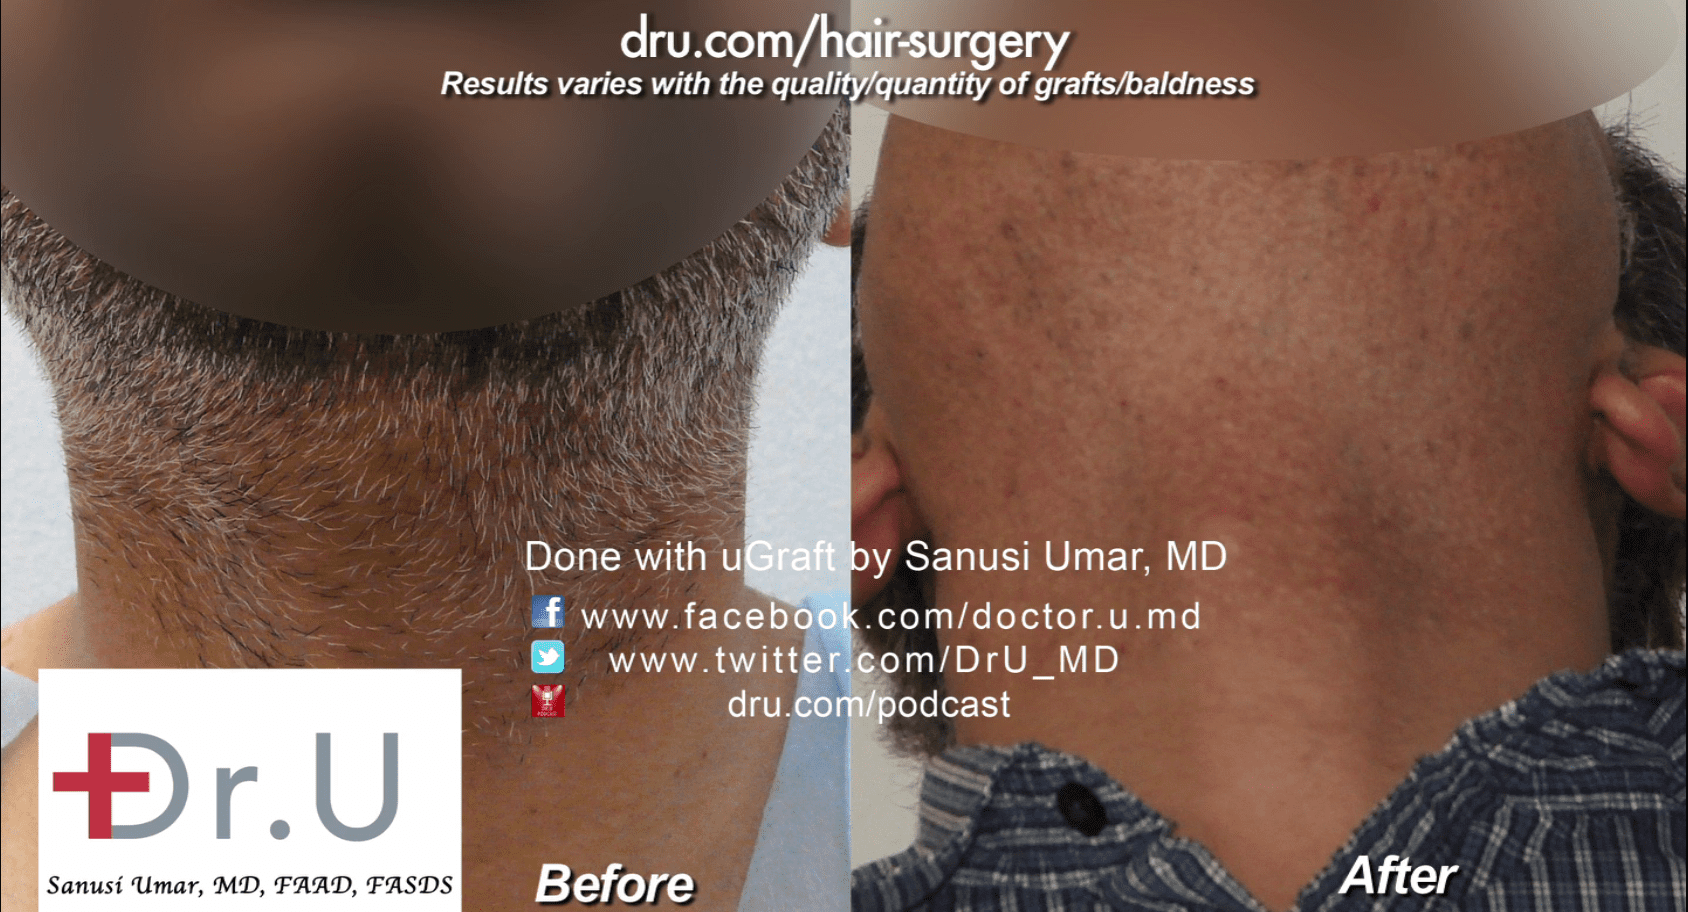 Dr. Umar used 4000 beard grafts for this procedure.*